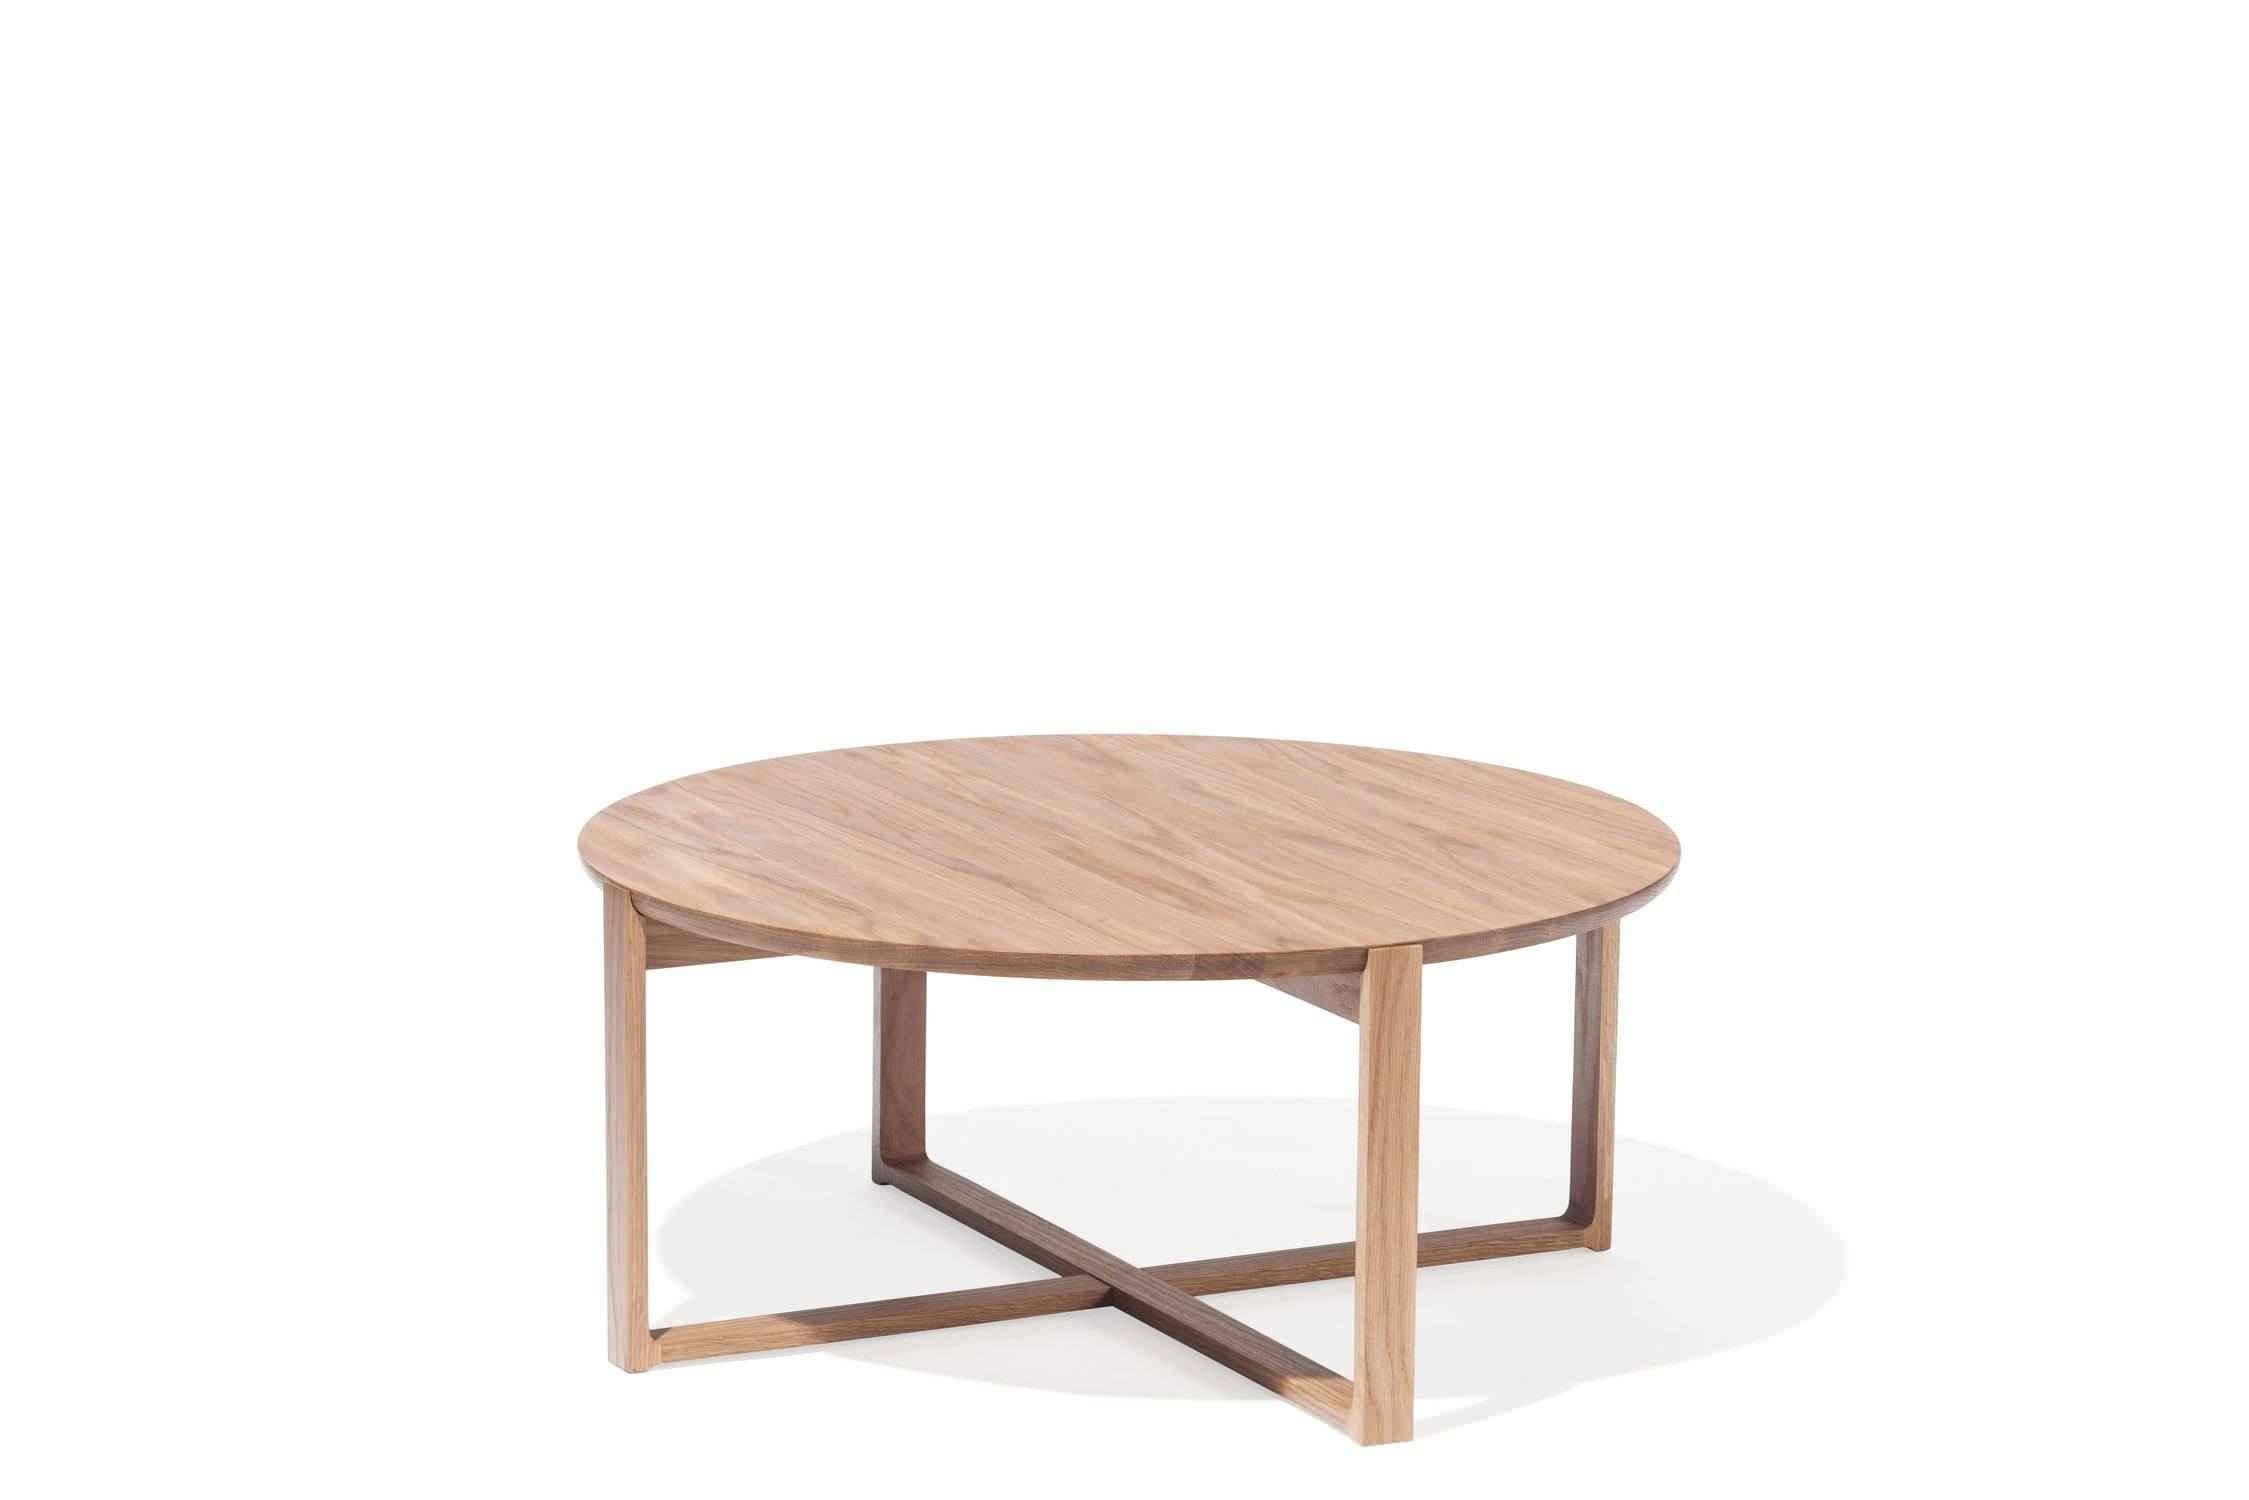 Contemporary Coffee Table / Oak / Beech / Round - Delta 723Kai pertaining to Round Oak Coffee Tables (Image 5 of 30)